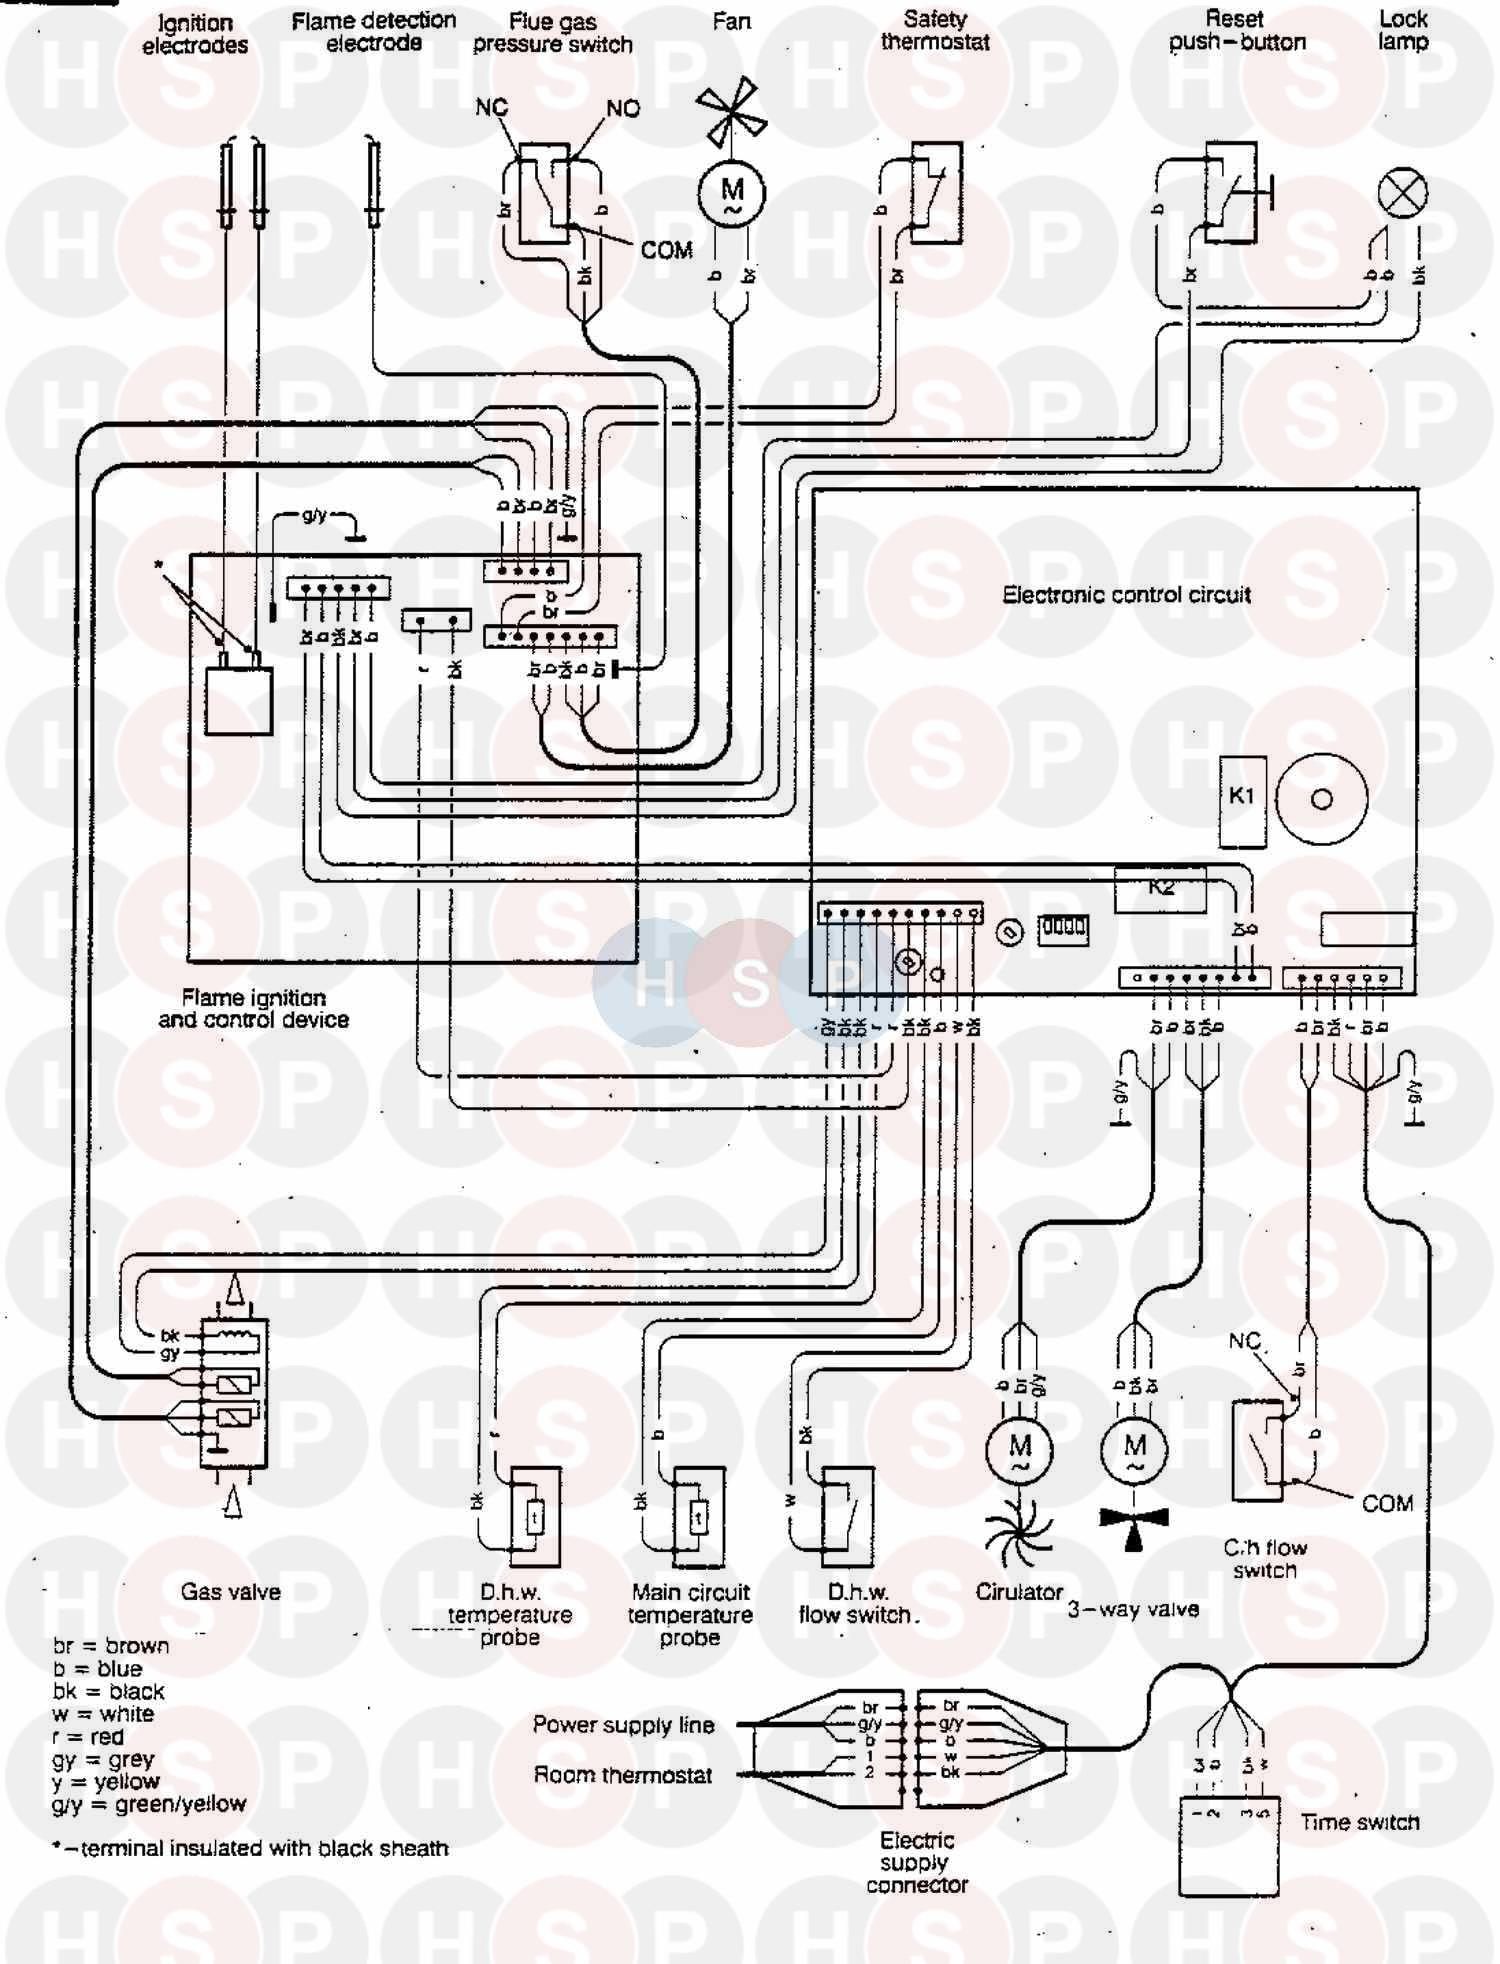 2001 honda nighthawk wiring diagram